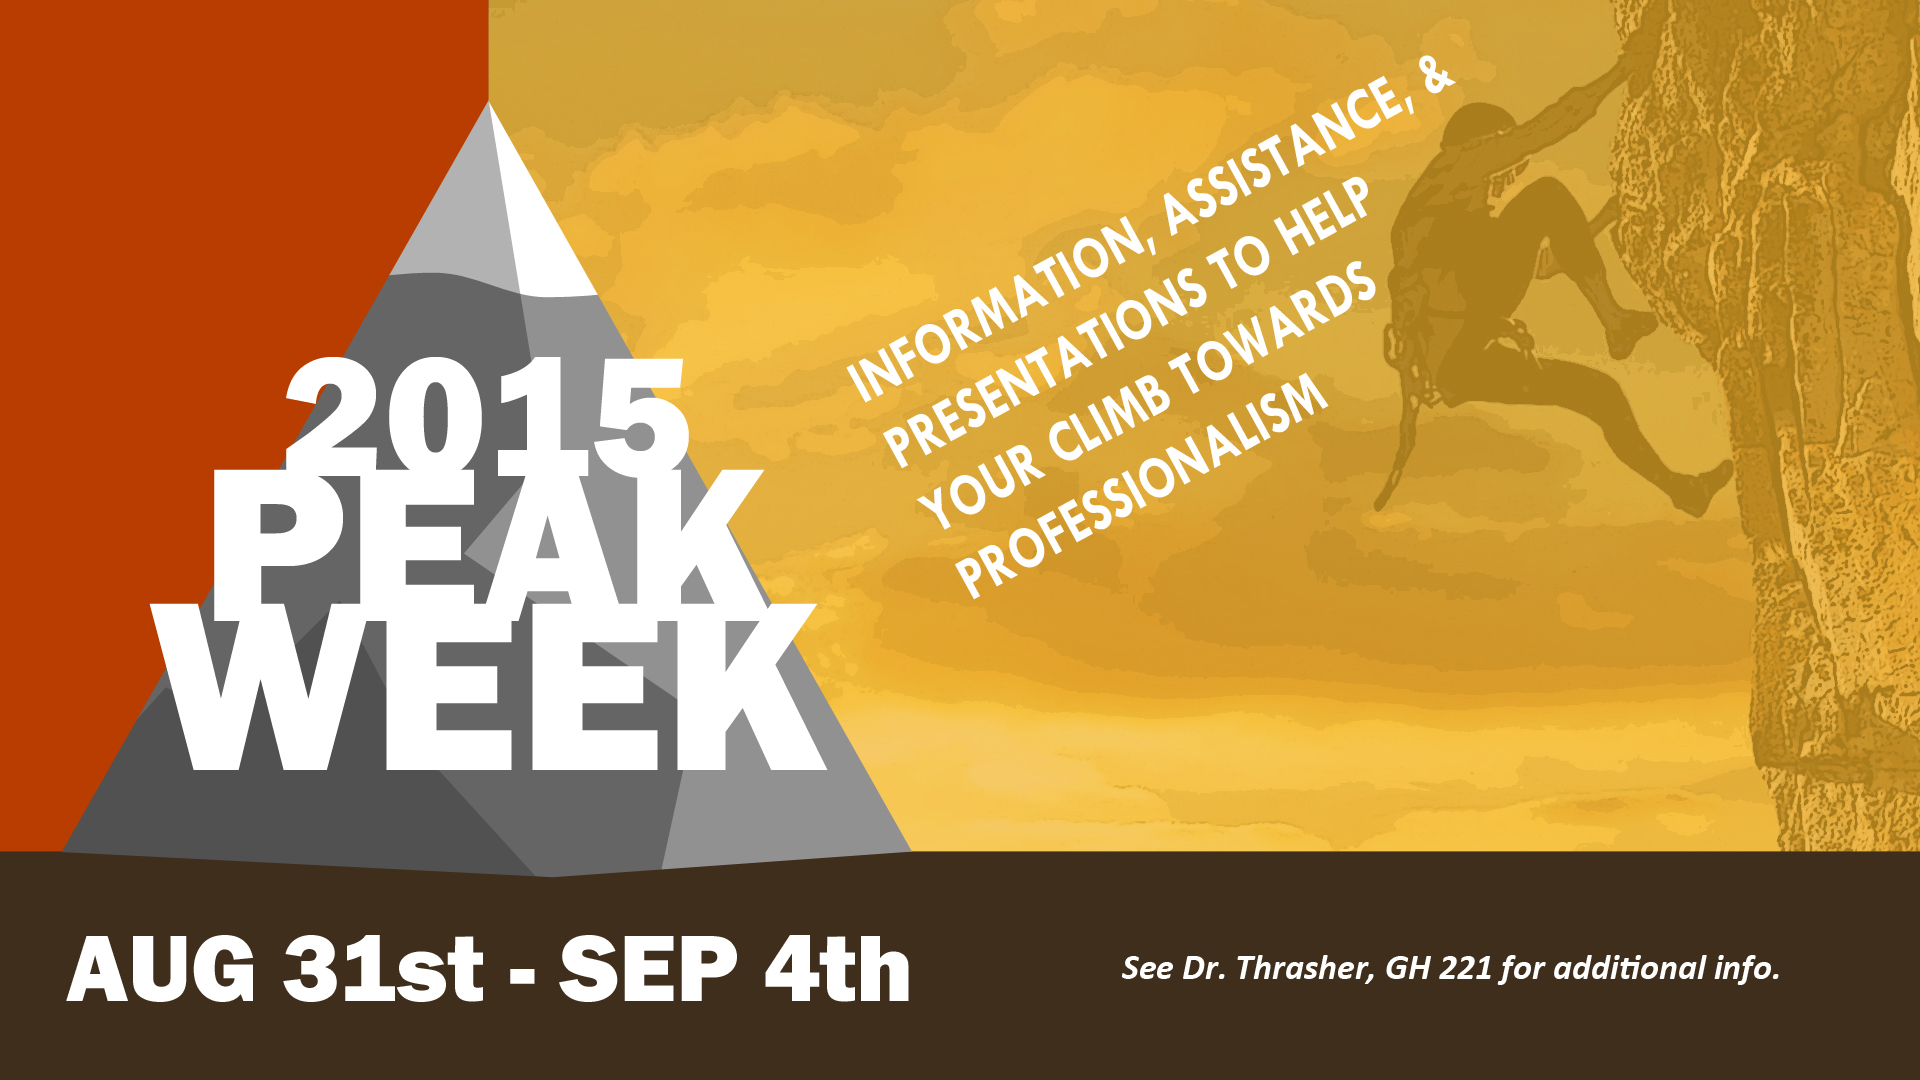 PEAK week is Aug. 31st to Sept 4th.